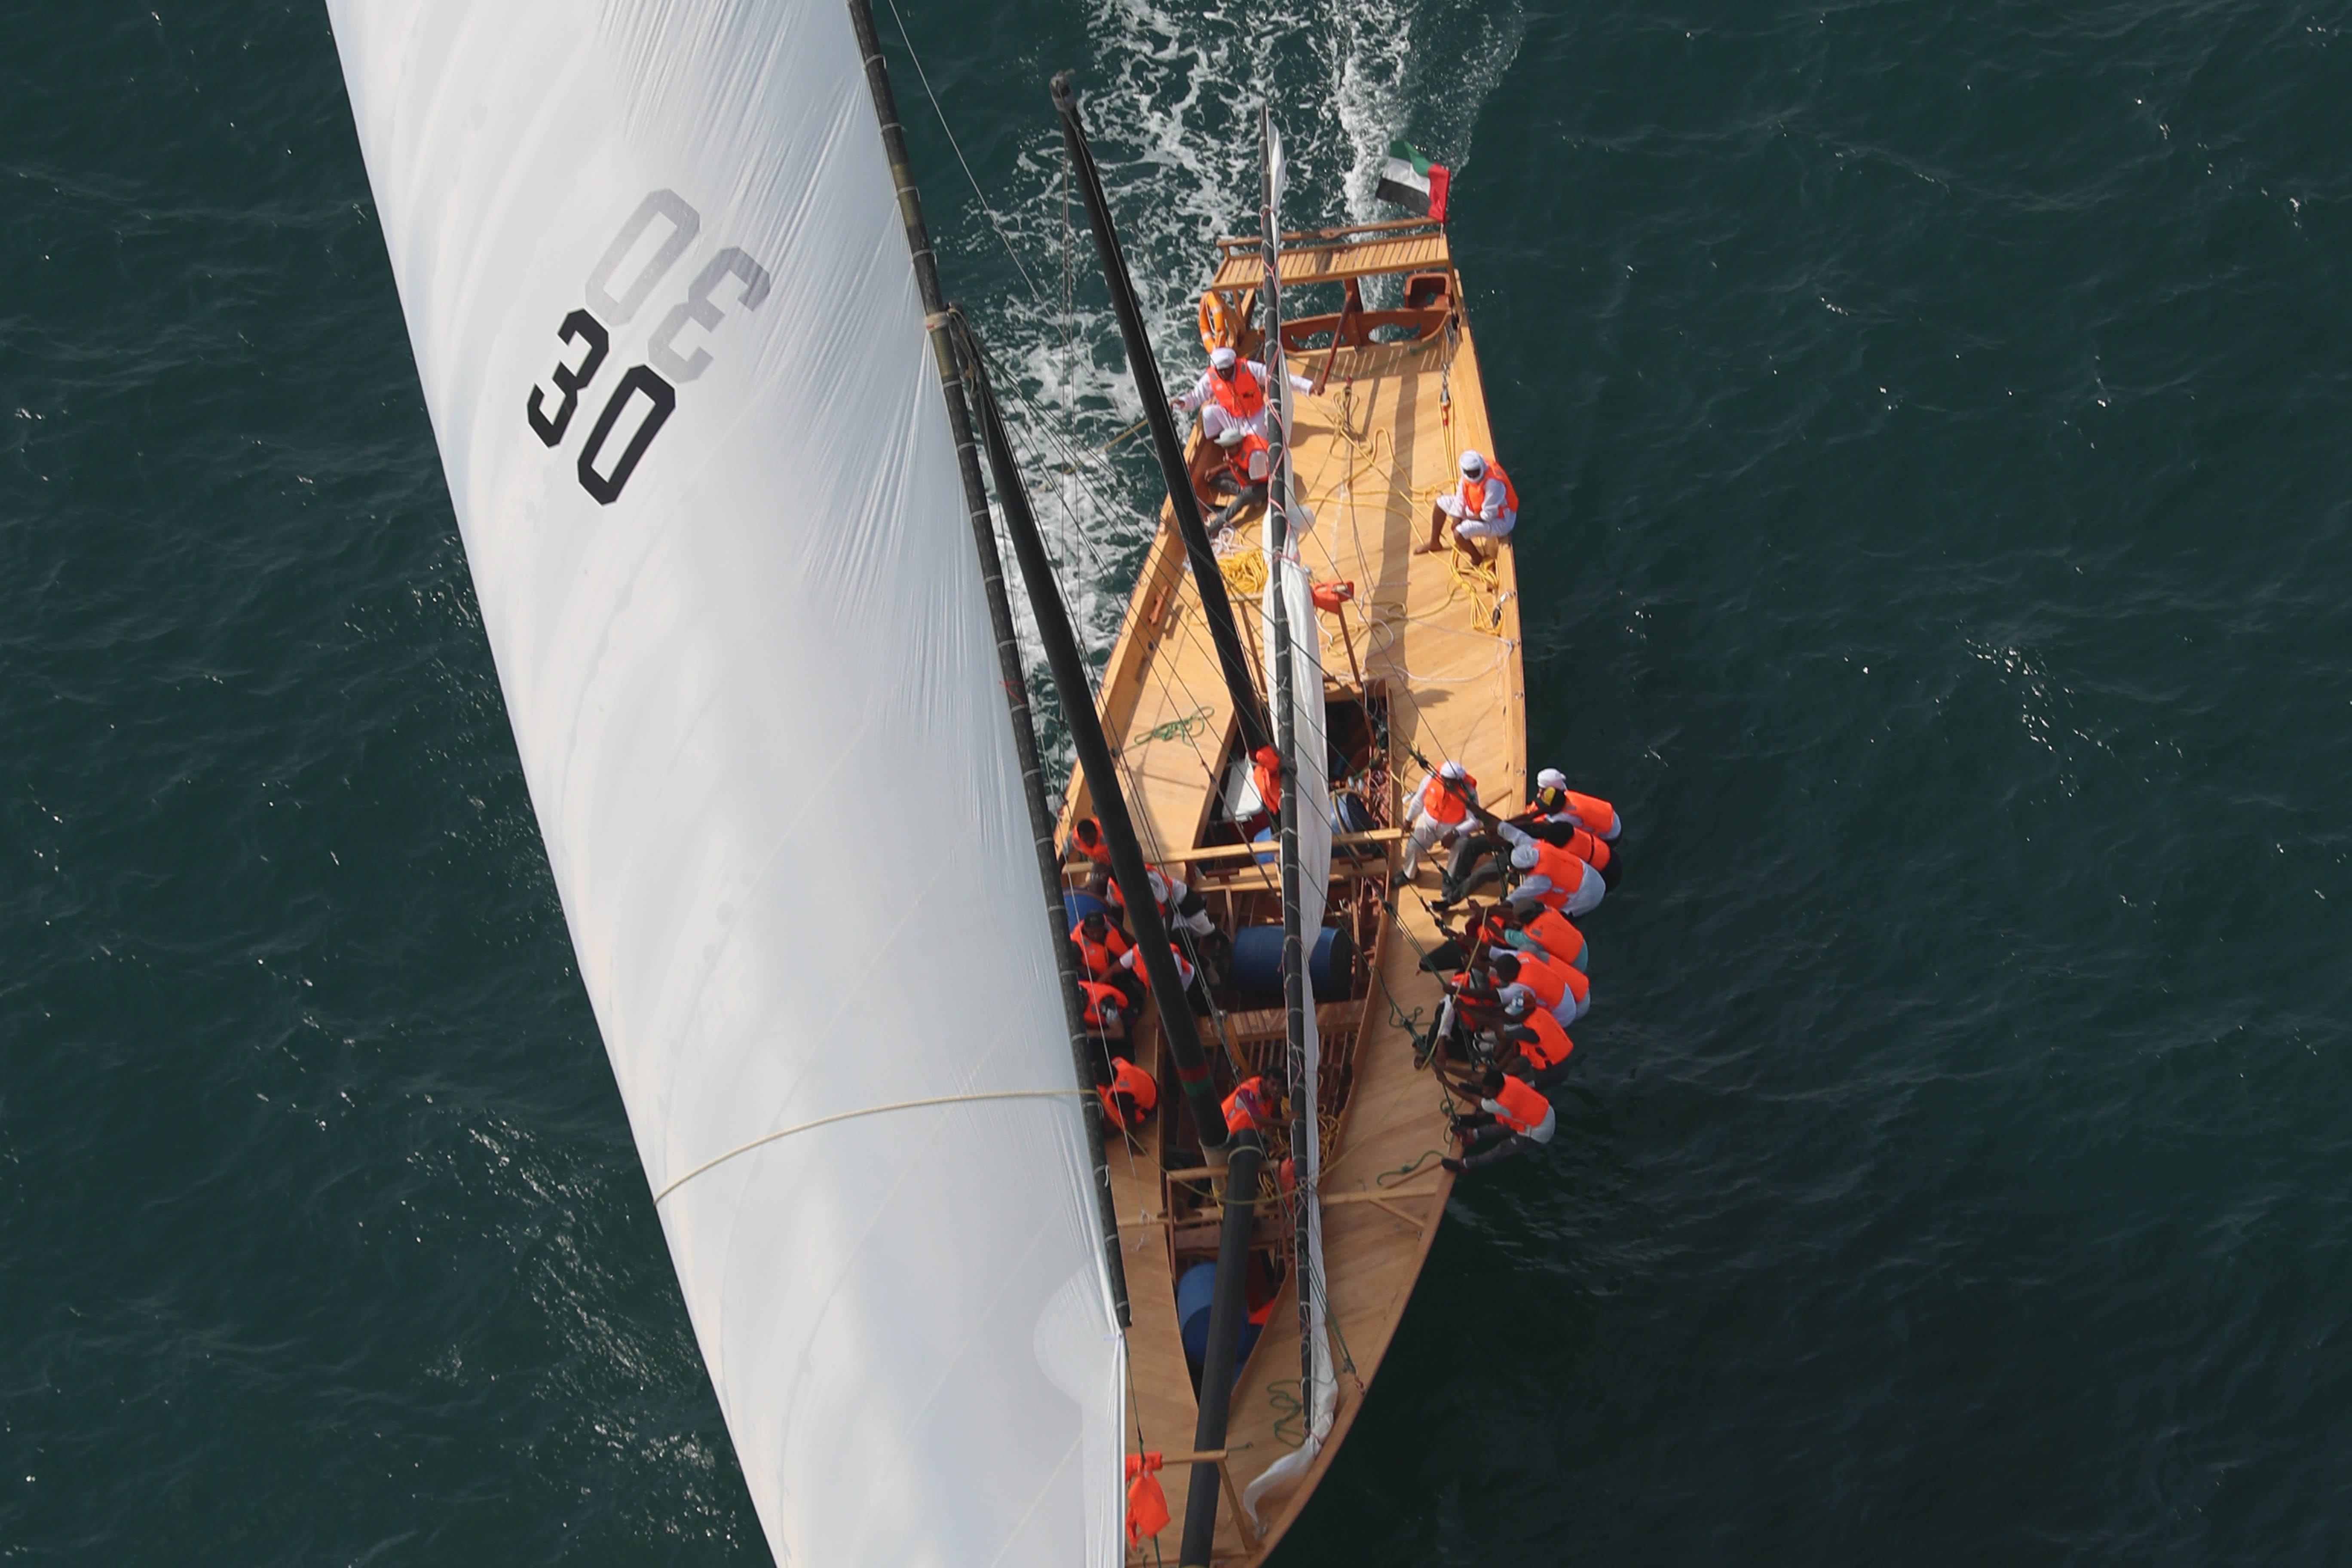 Registration for 60ft Dhow Sailing Race Heat 1 Closes today